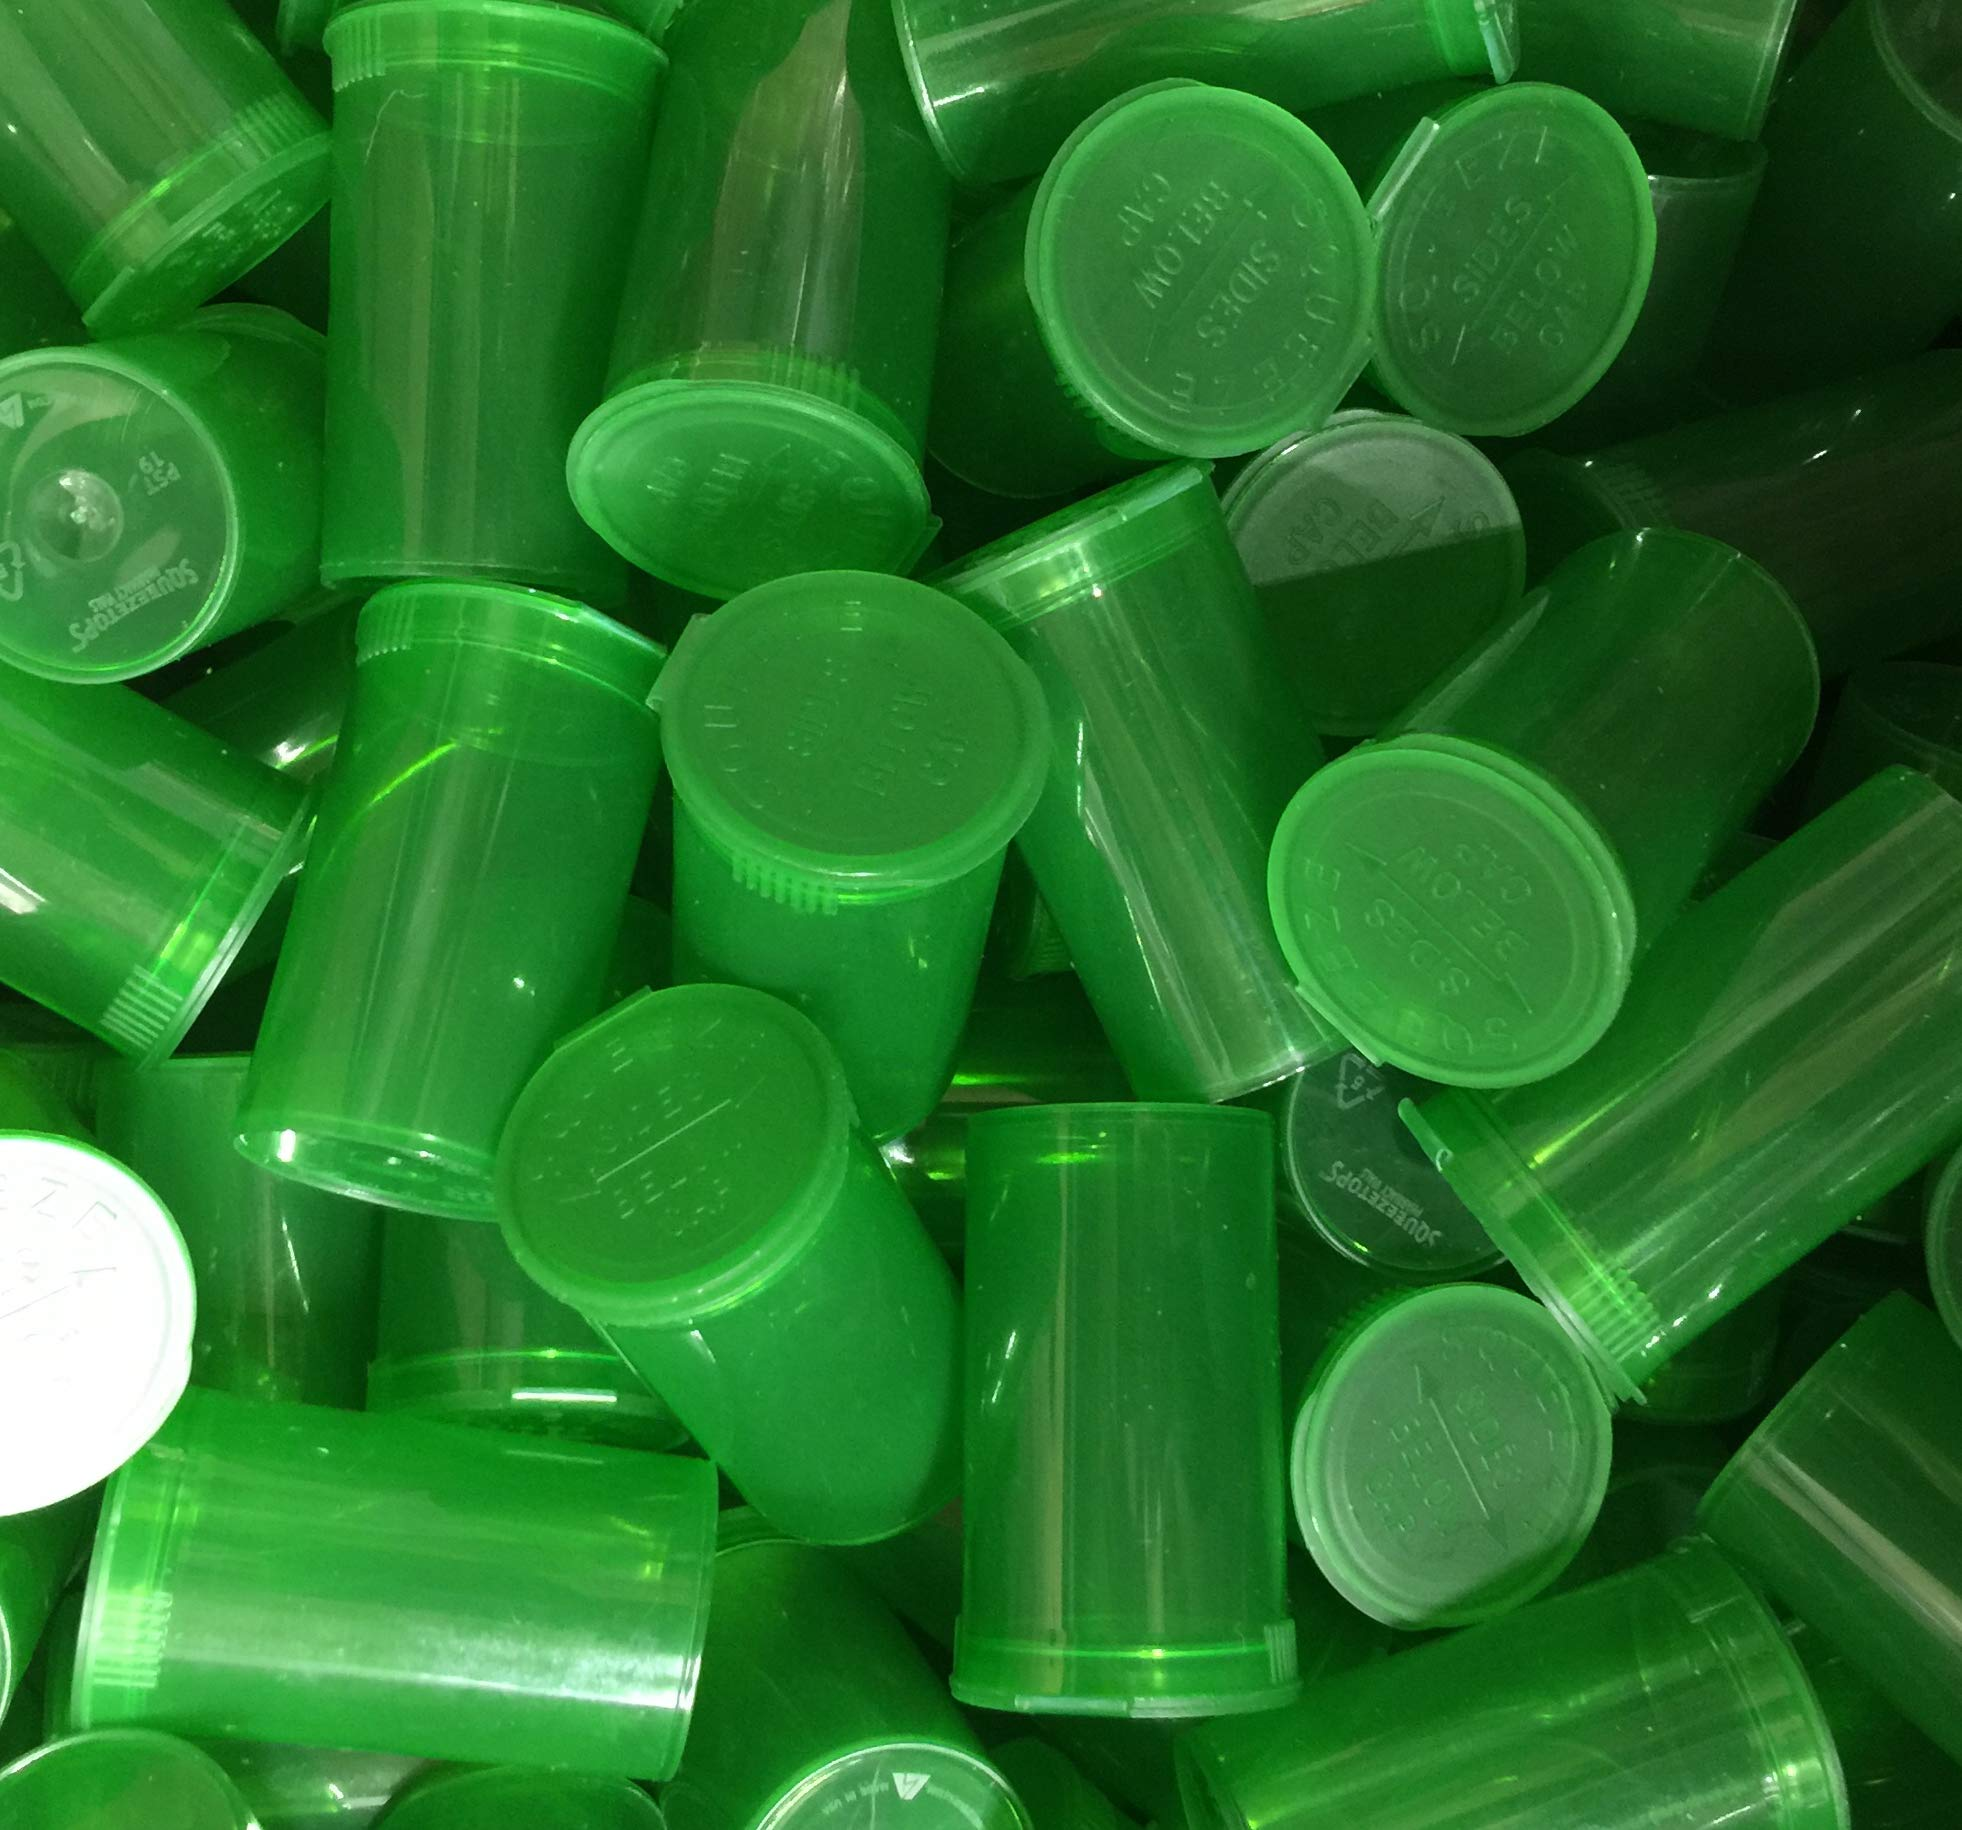 19 DRAM POP TOP Bottles Qty CASE Size Count Rx Pill Prescription Vials Crafts Coins Film Storage Medicine MMJ 420 CONTAINERS & Made in USA (100 PCS, Green - Transparent) by Squeezetops®